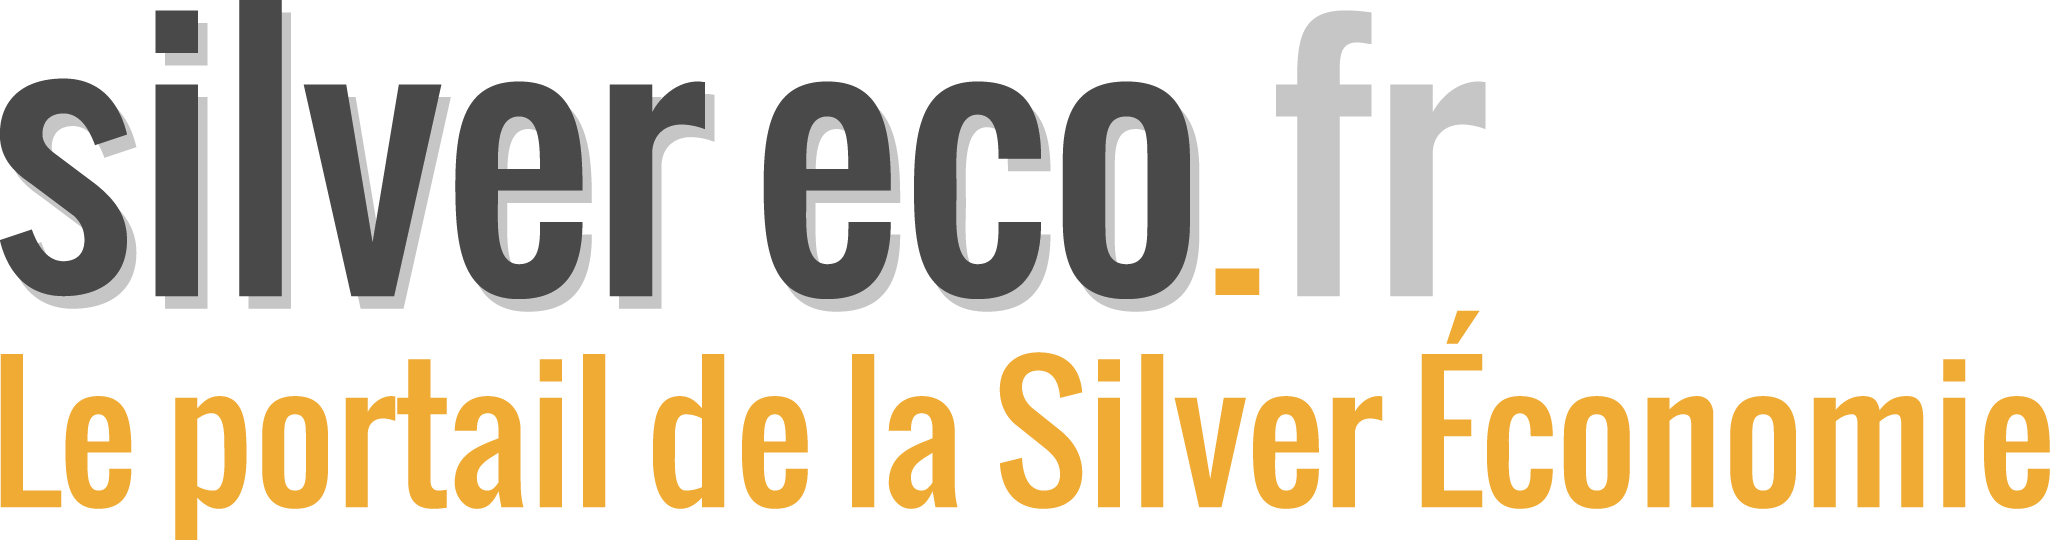 http://www.ccmbenchmark.com/image/partenaire/logo-silver-eco.fr.png